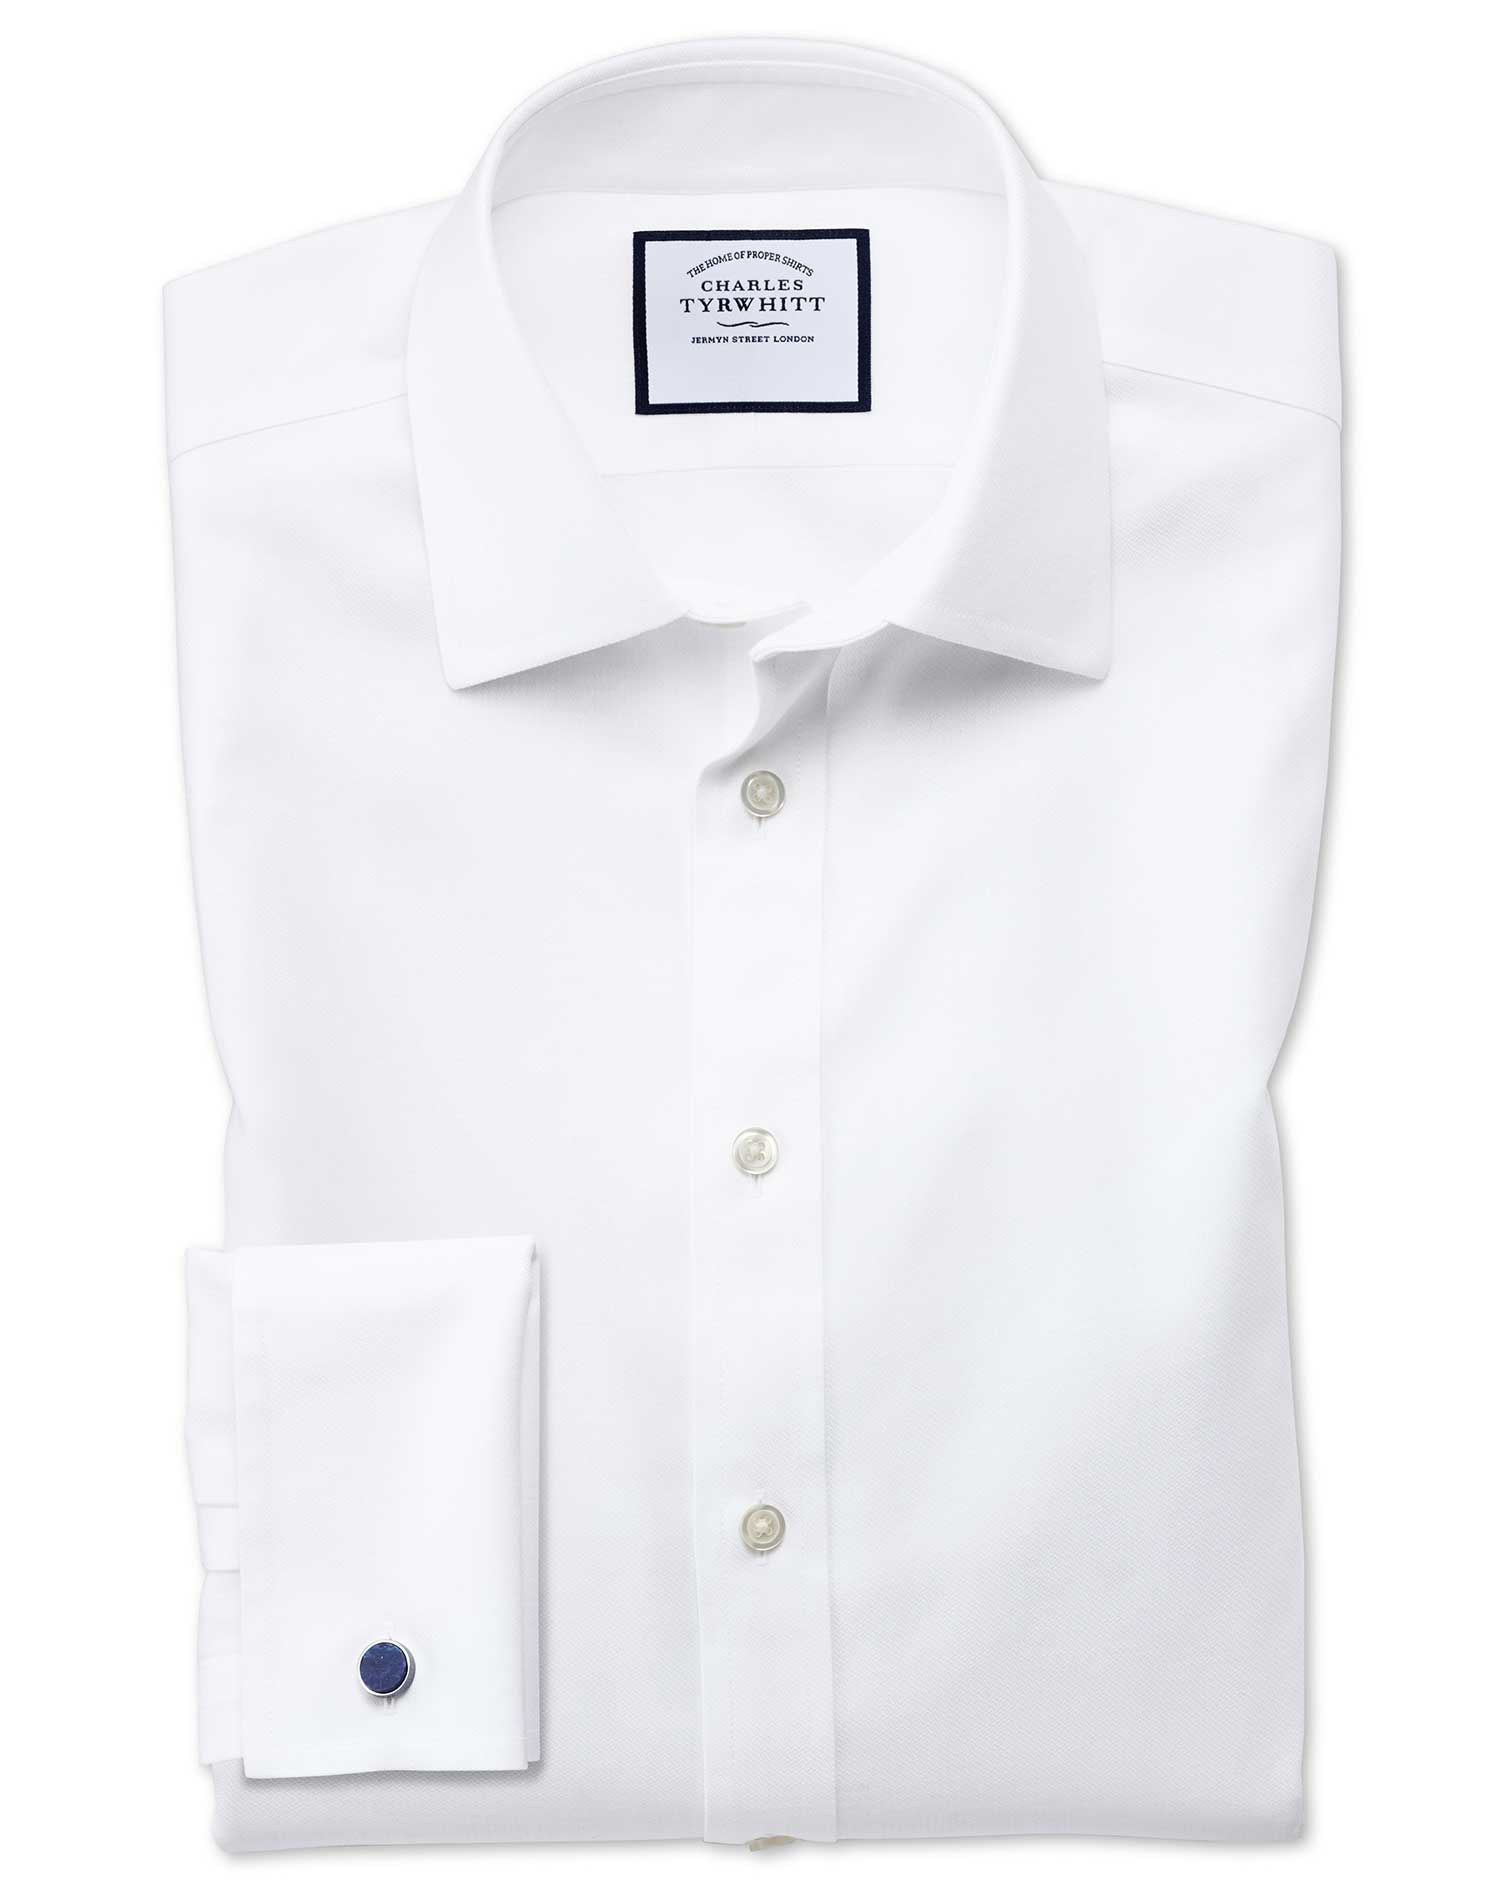 Slim Fit Non-Iron Step Weave White Cotton Formal Shirt Double Cuff Size 16/35 by Charles Tyrwhitt